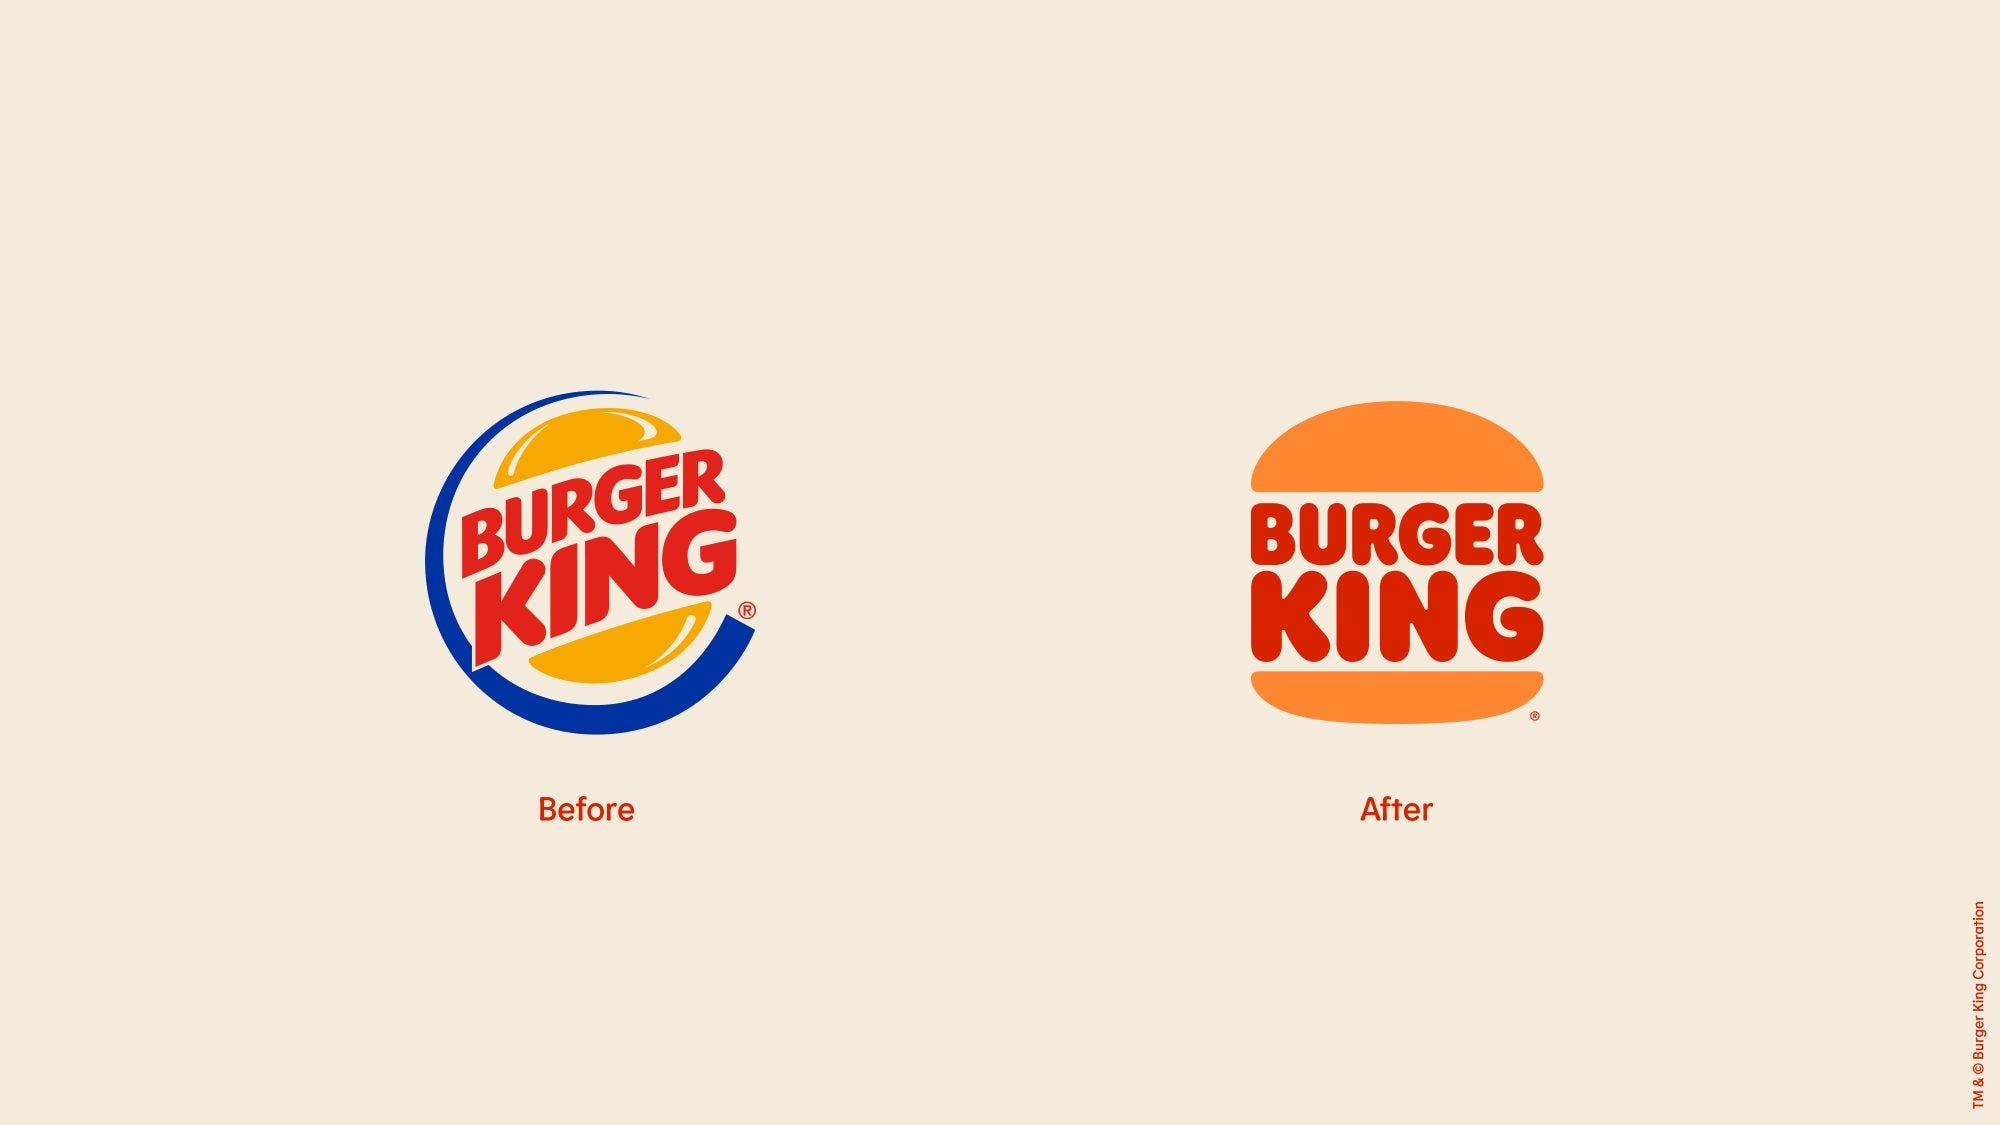 Burger King's logo change is the first in 20 years.